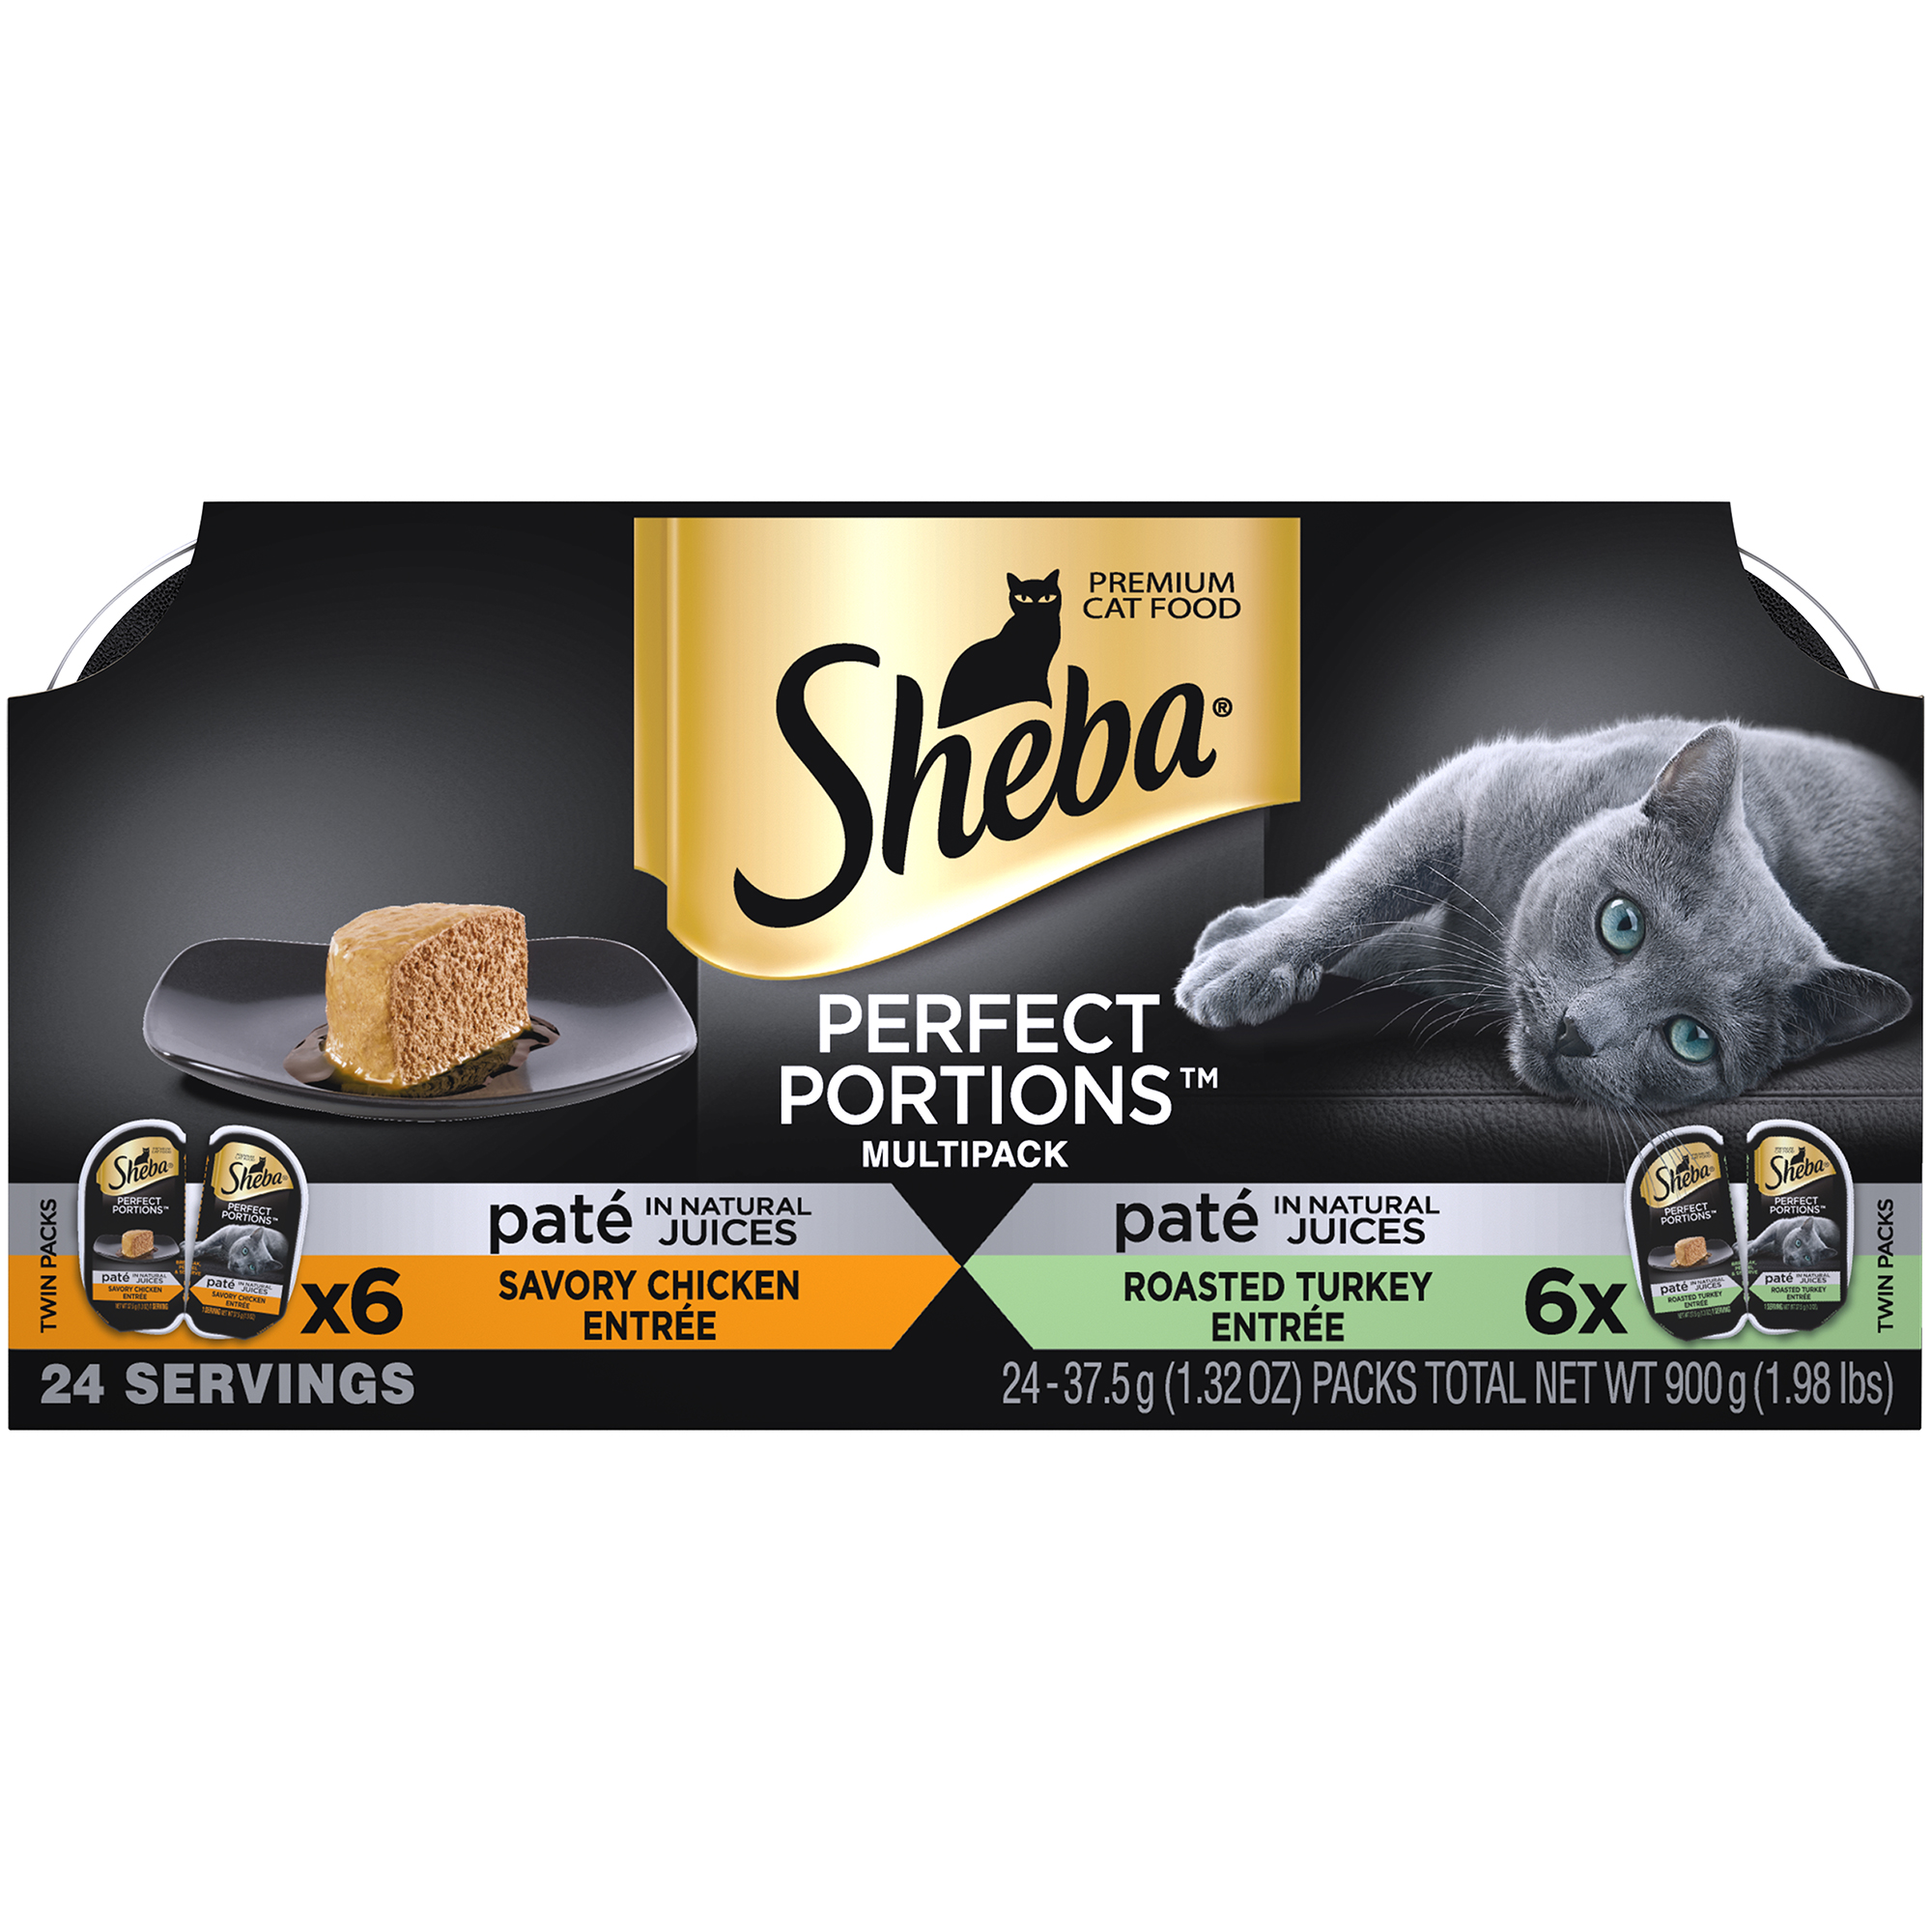 SHEBA PERFECT PORTIONS Wet Cat Food Paté in Natural Juices Savory Chicken Entrée & Roasted Turkey Entrée Variety Pack, (12) 2.6 oz. Twin-Pack Trays